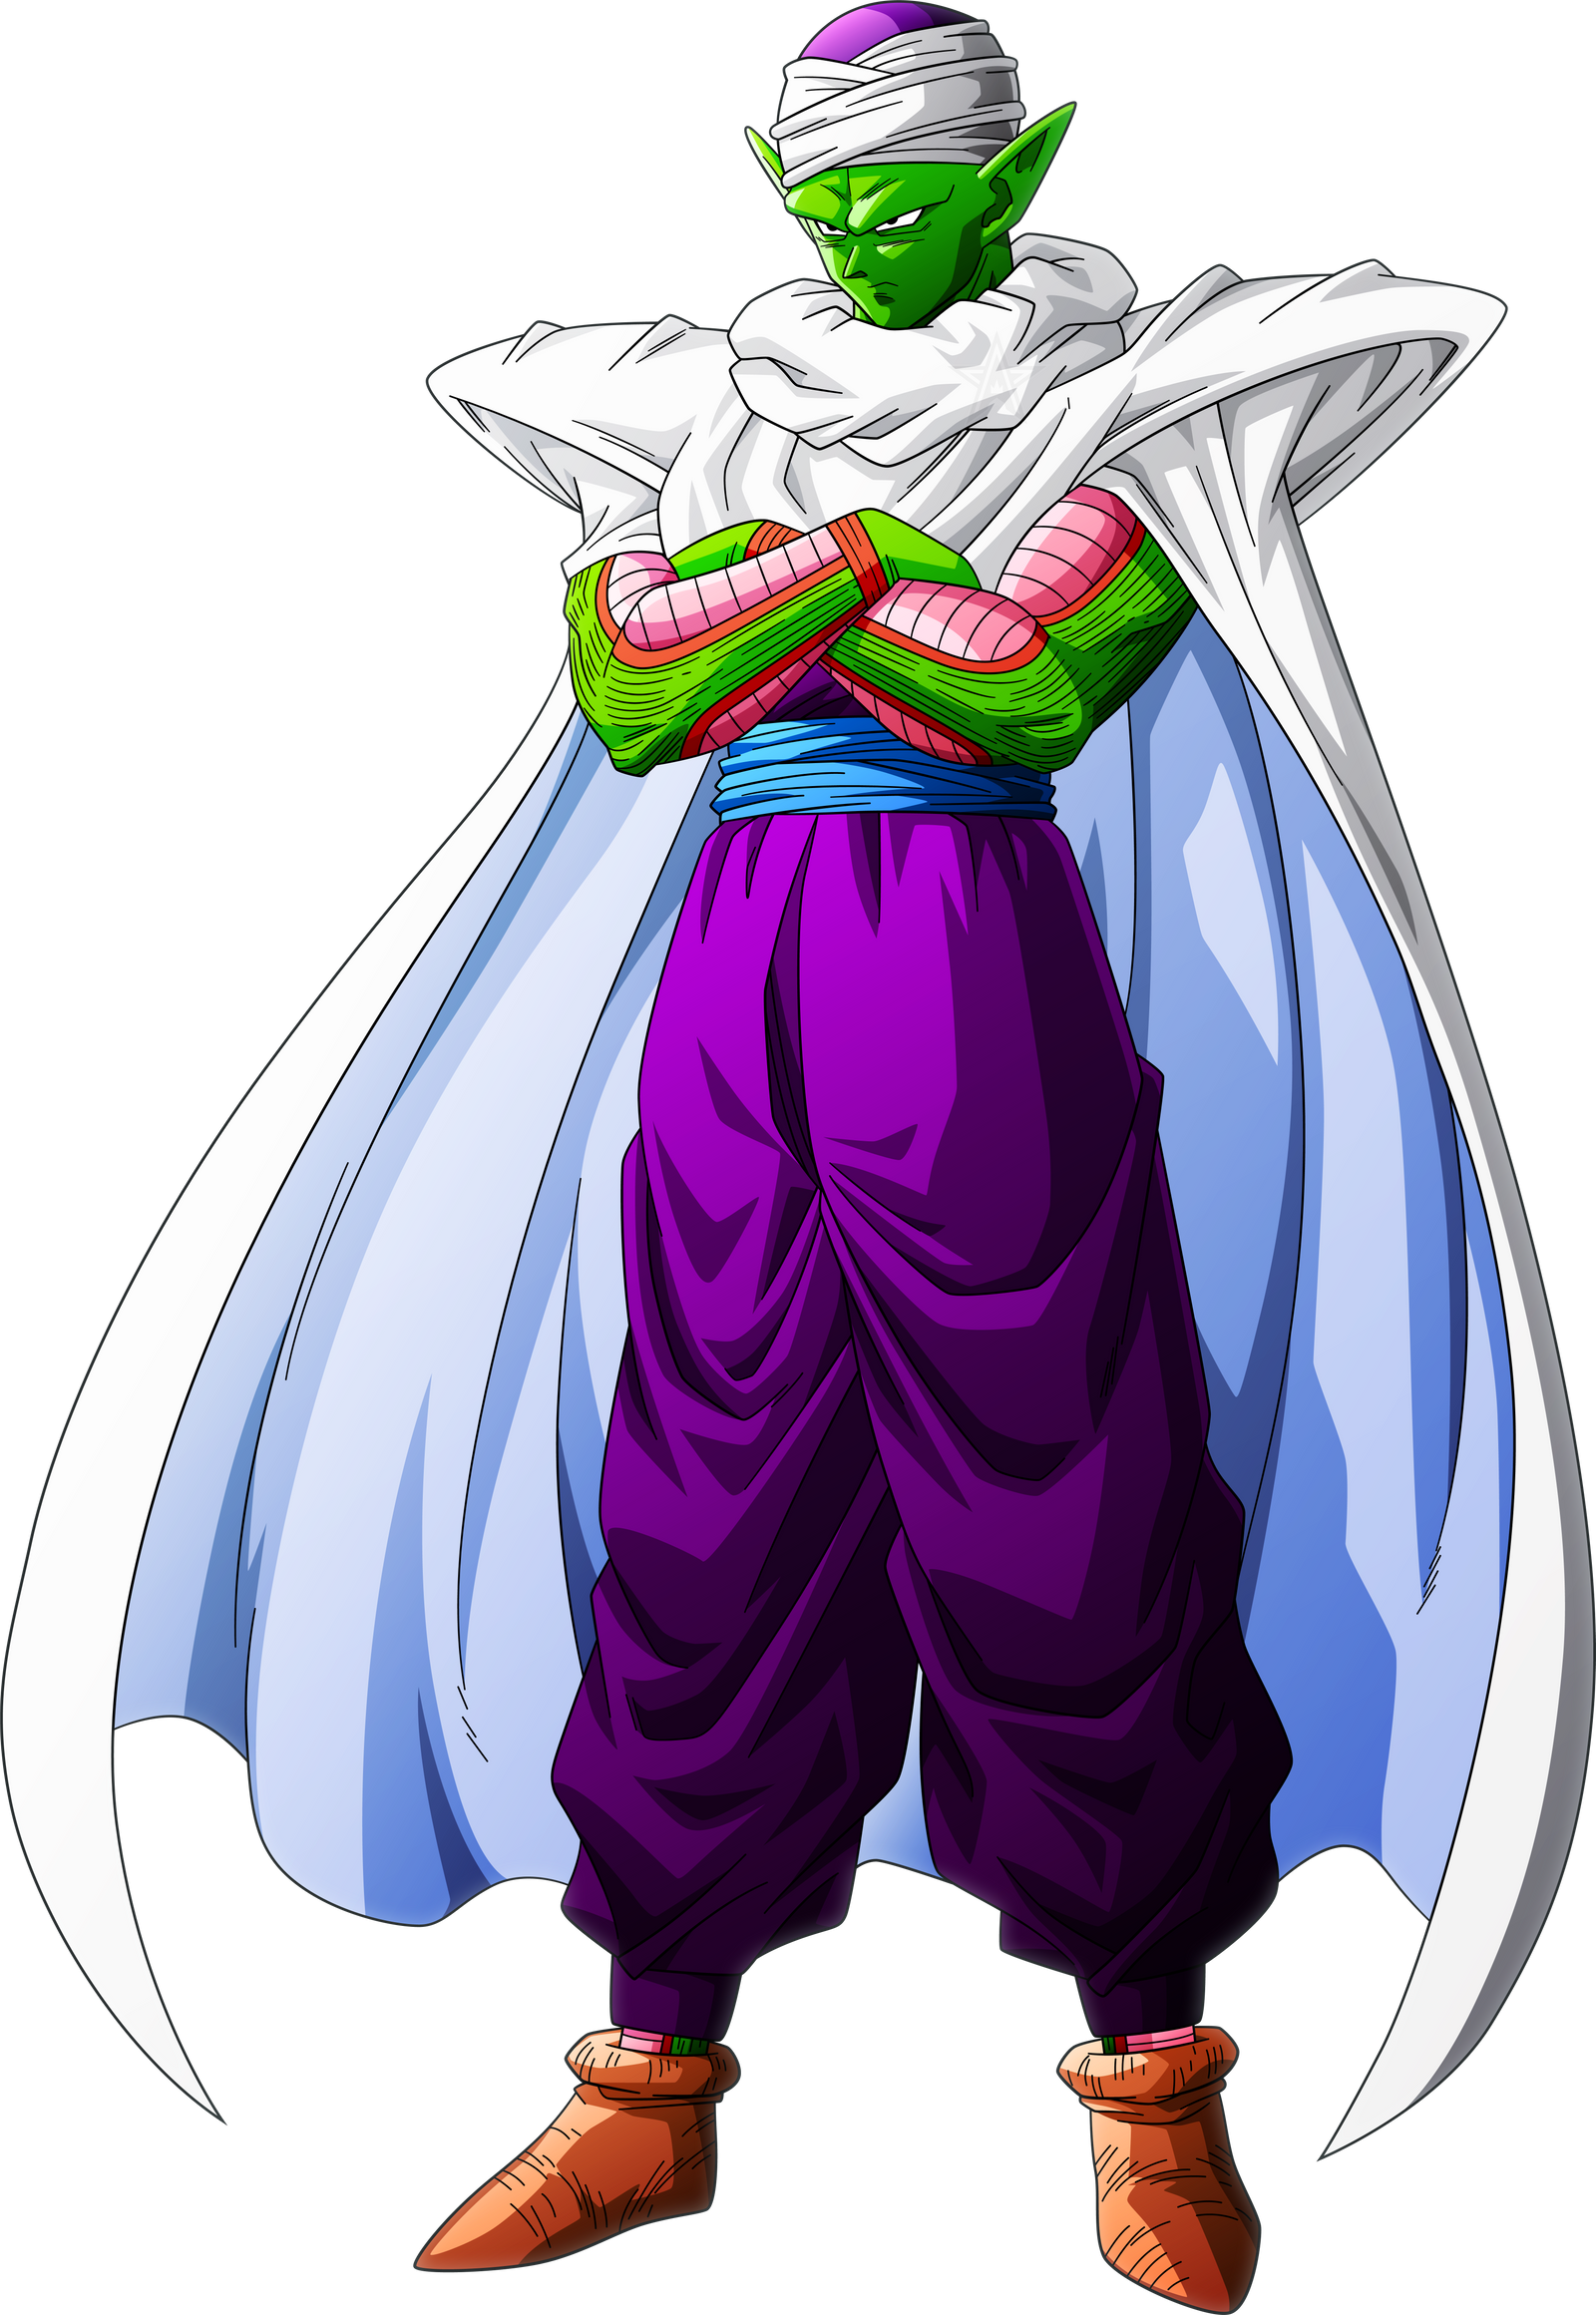 Piccolo 1 by aubreiprince on deviantart for Freezer piccolo